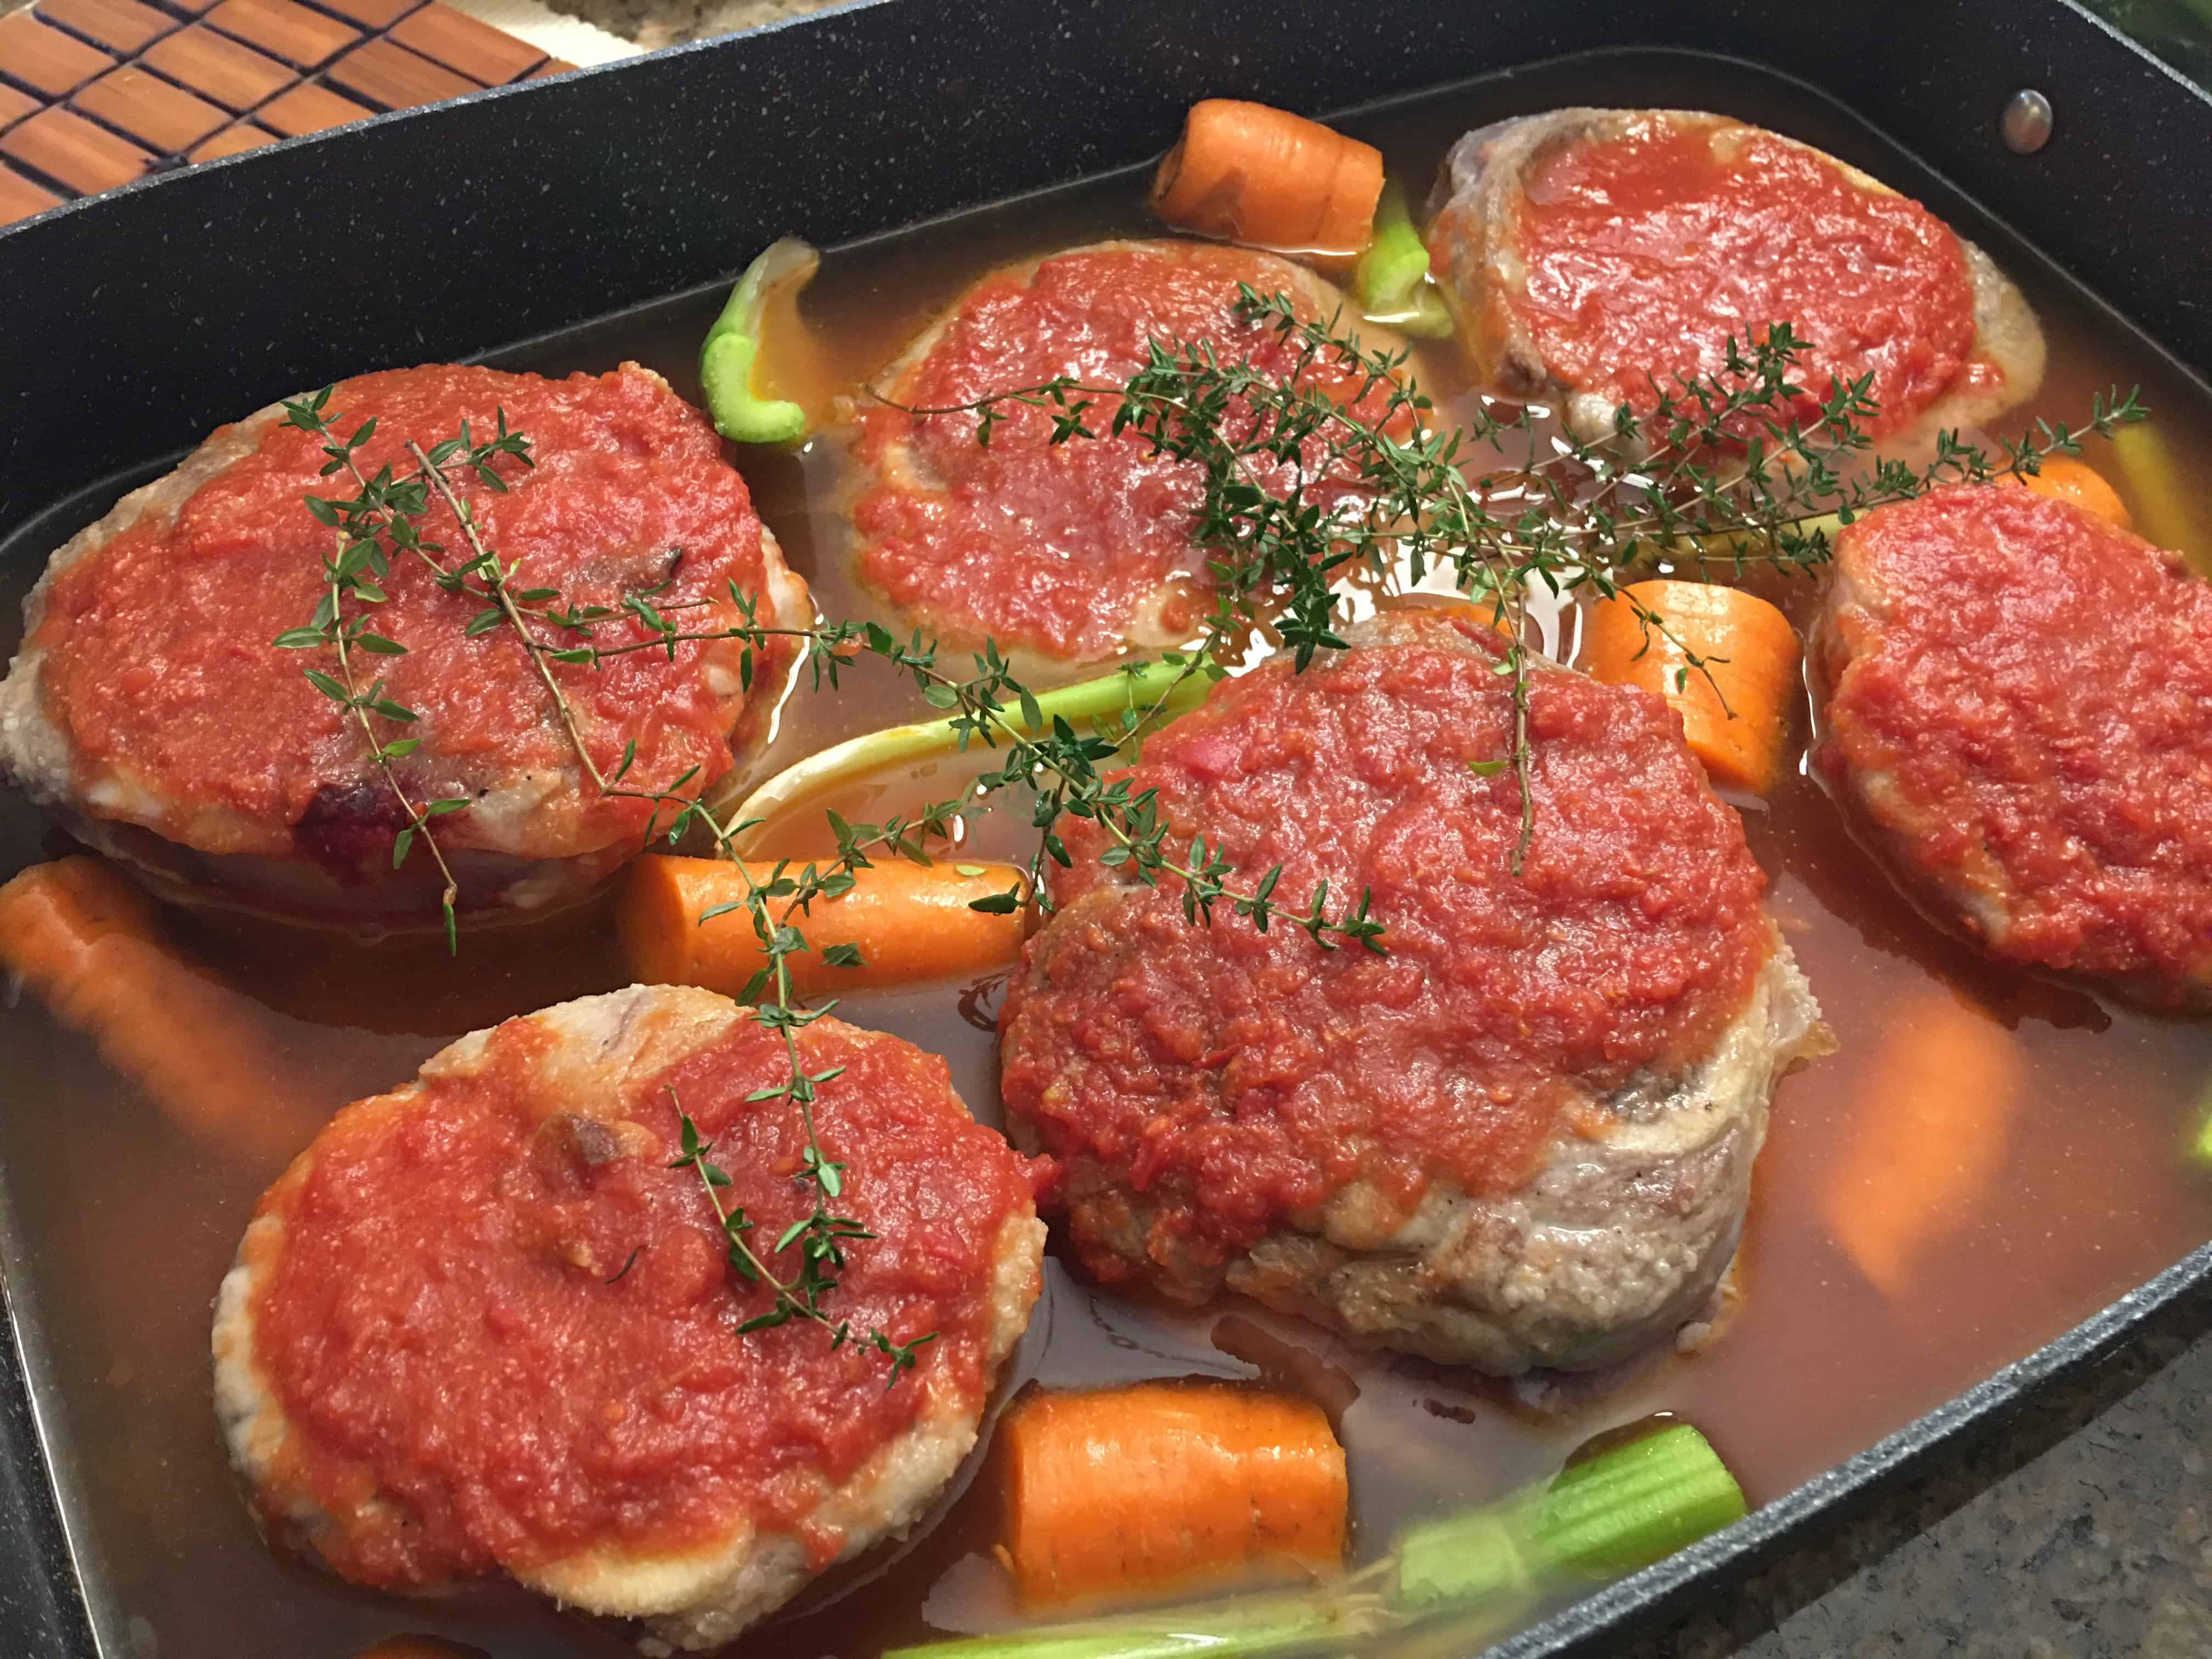 osso buco with sauce in a baking dish